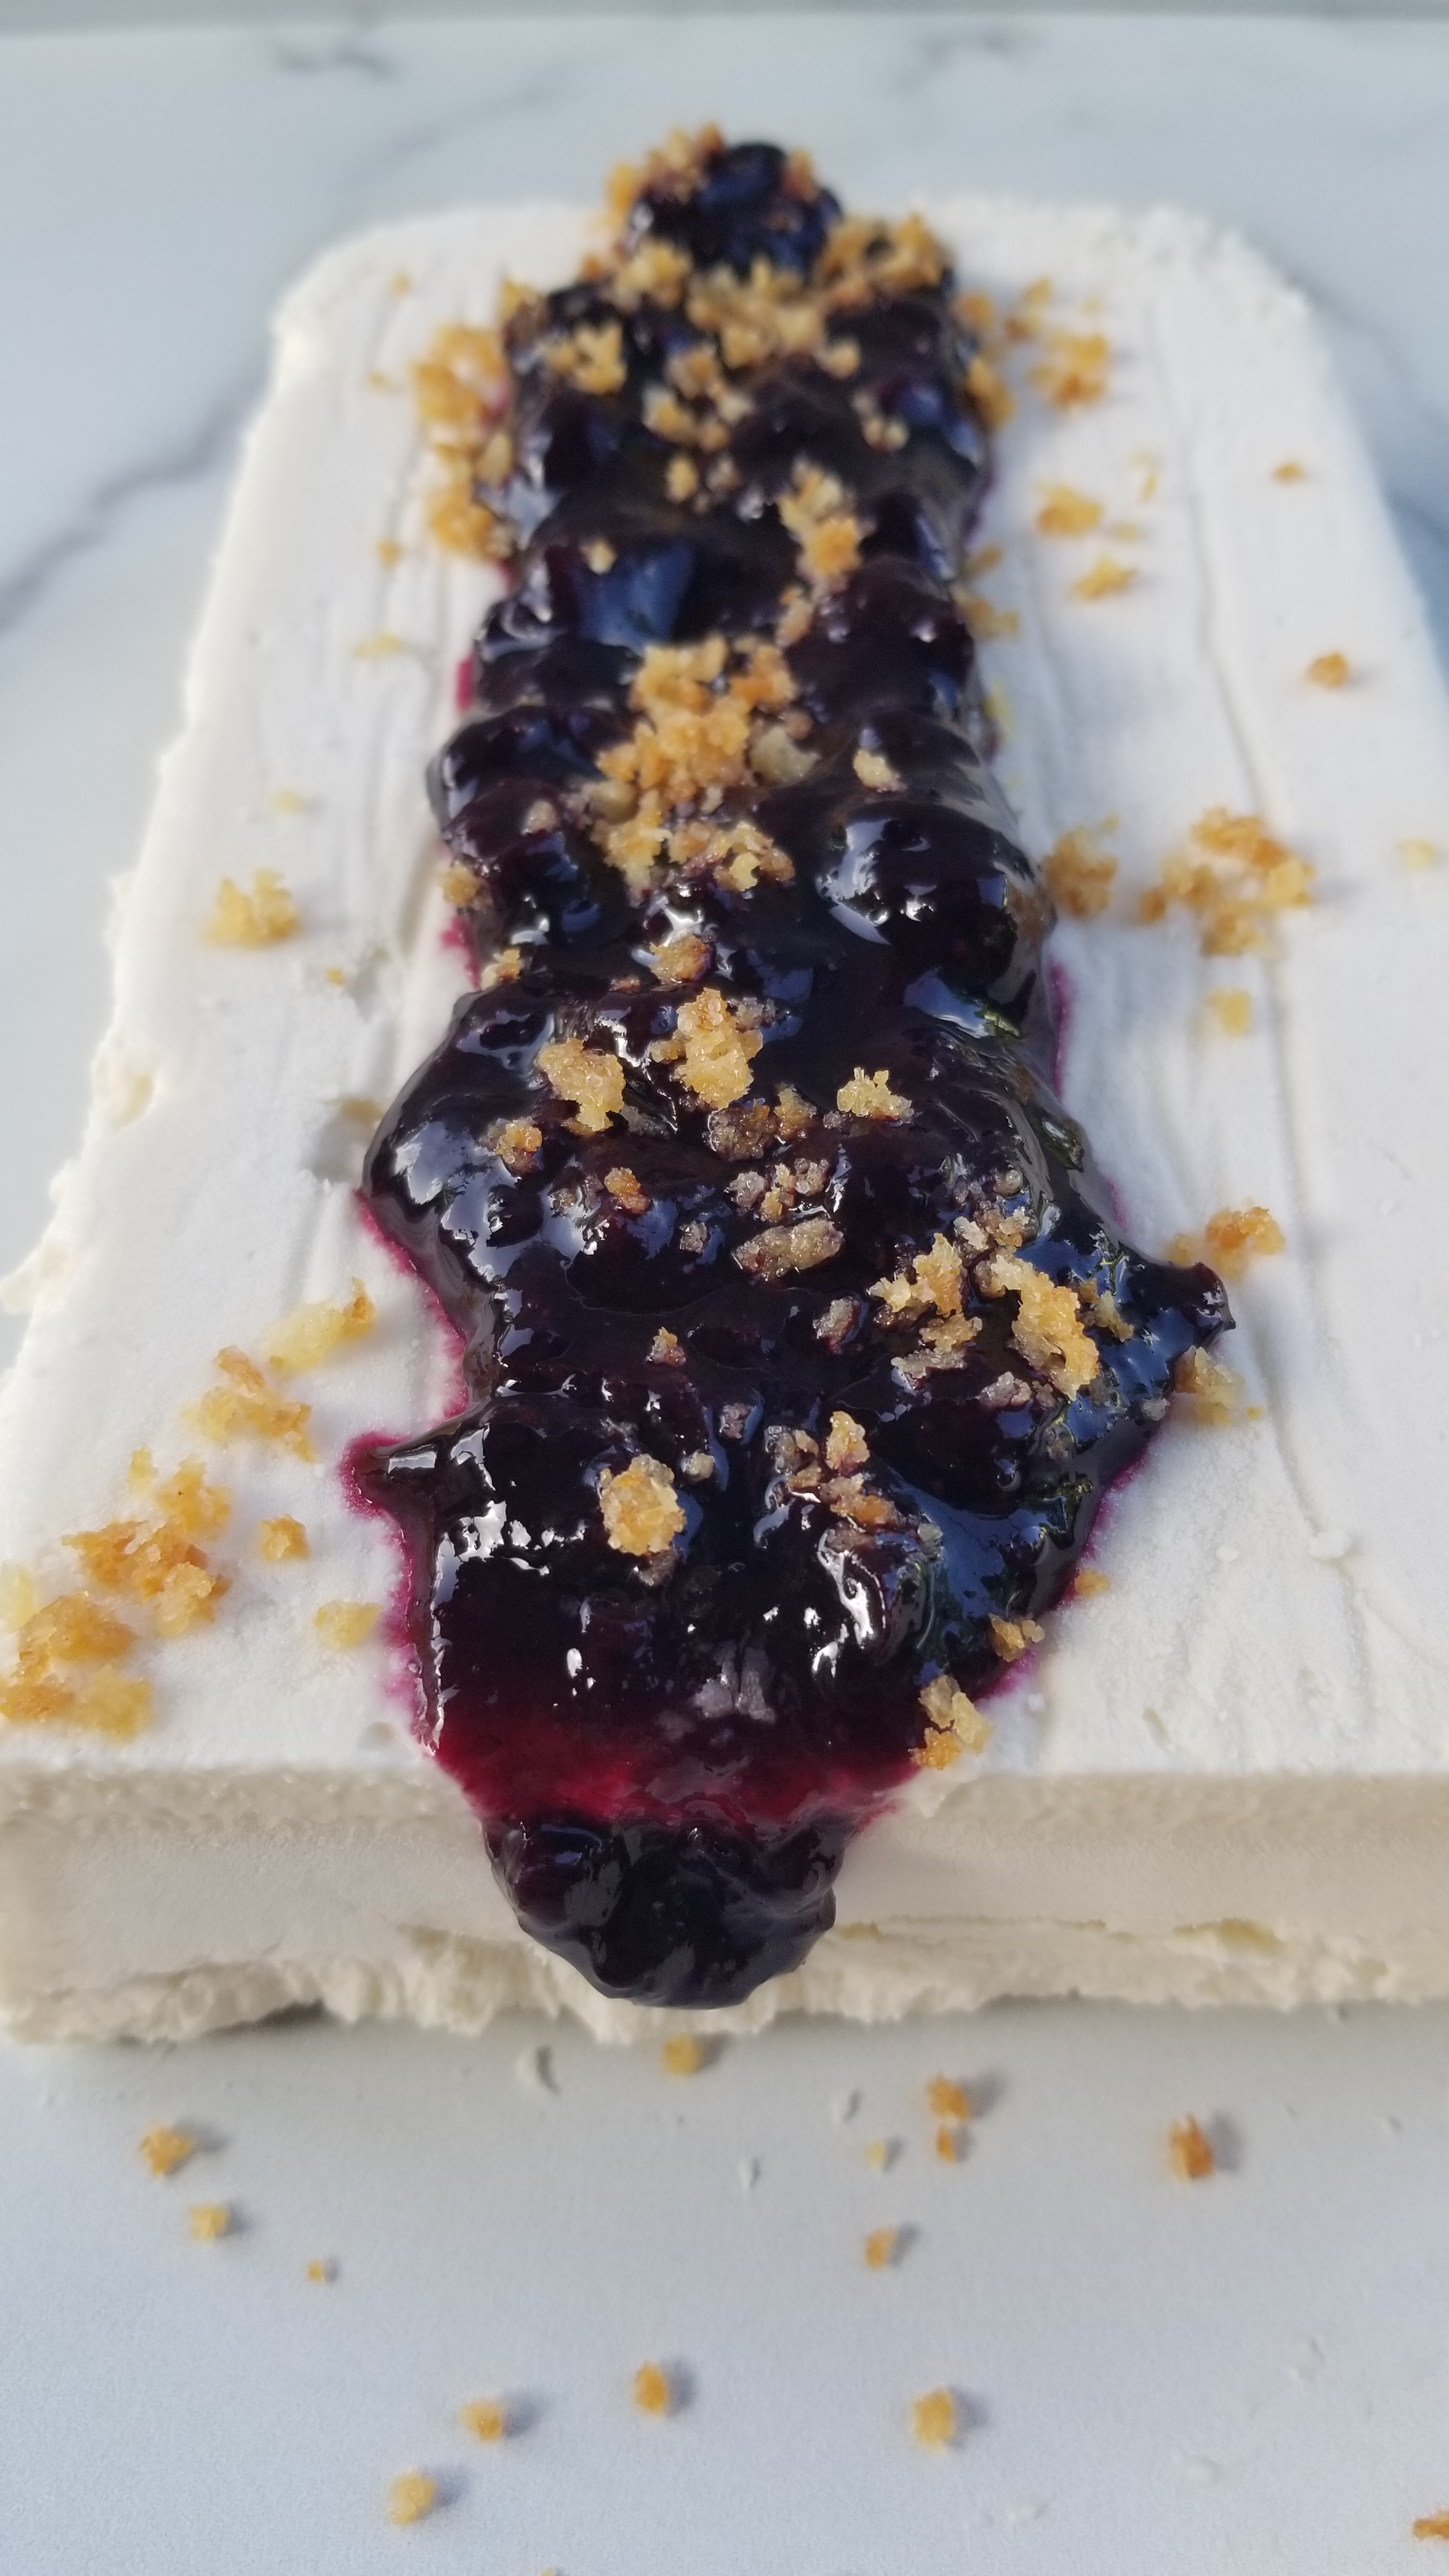 Also good with Blueberry Chia Jam, Semifreddo.